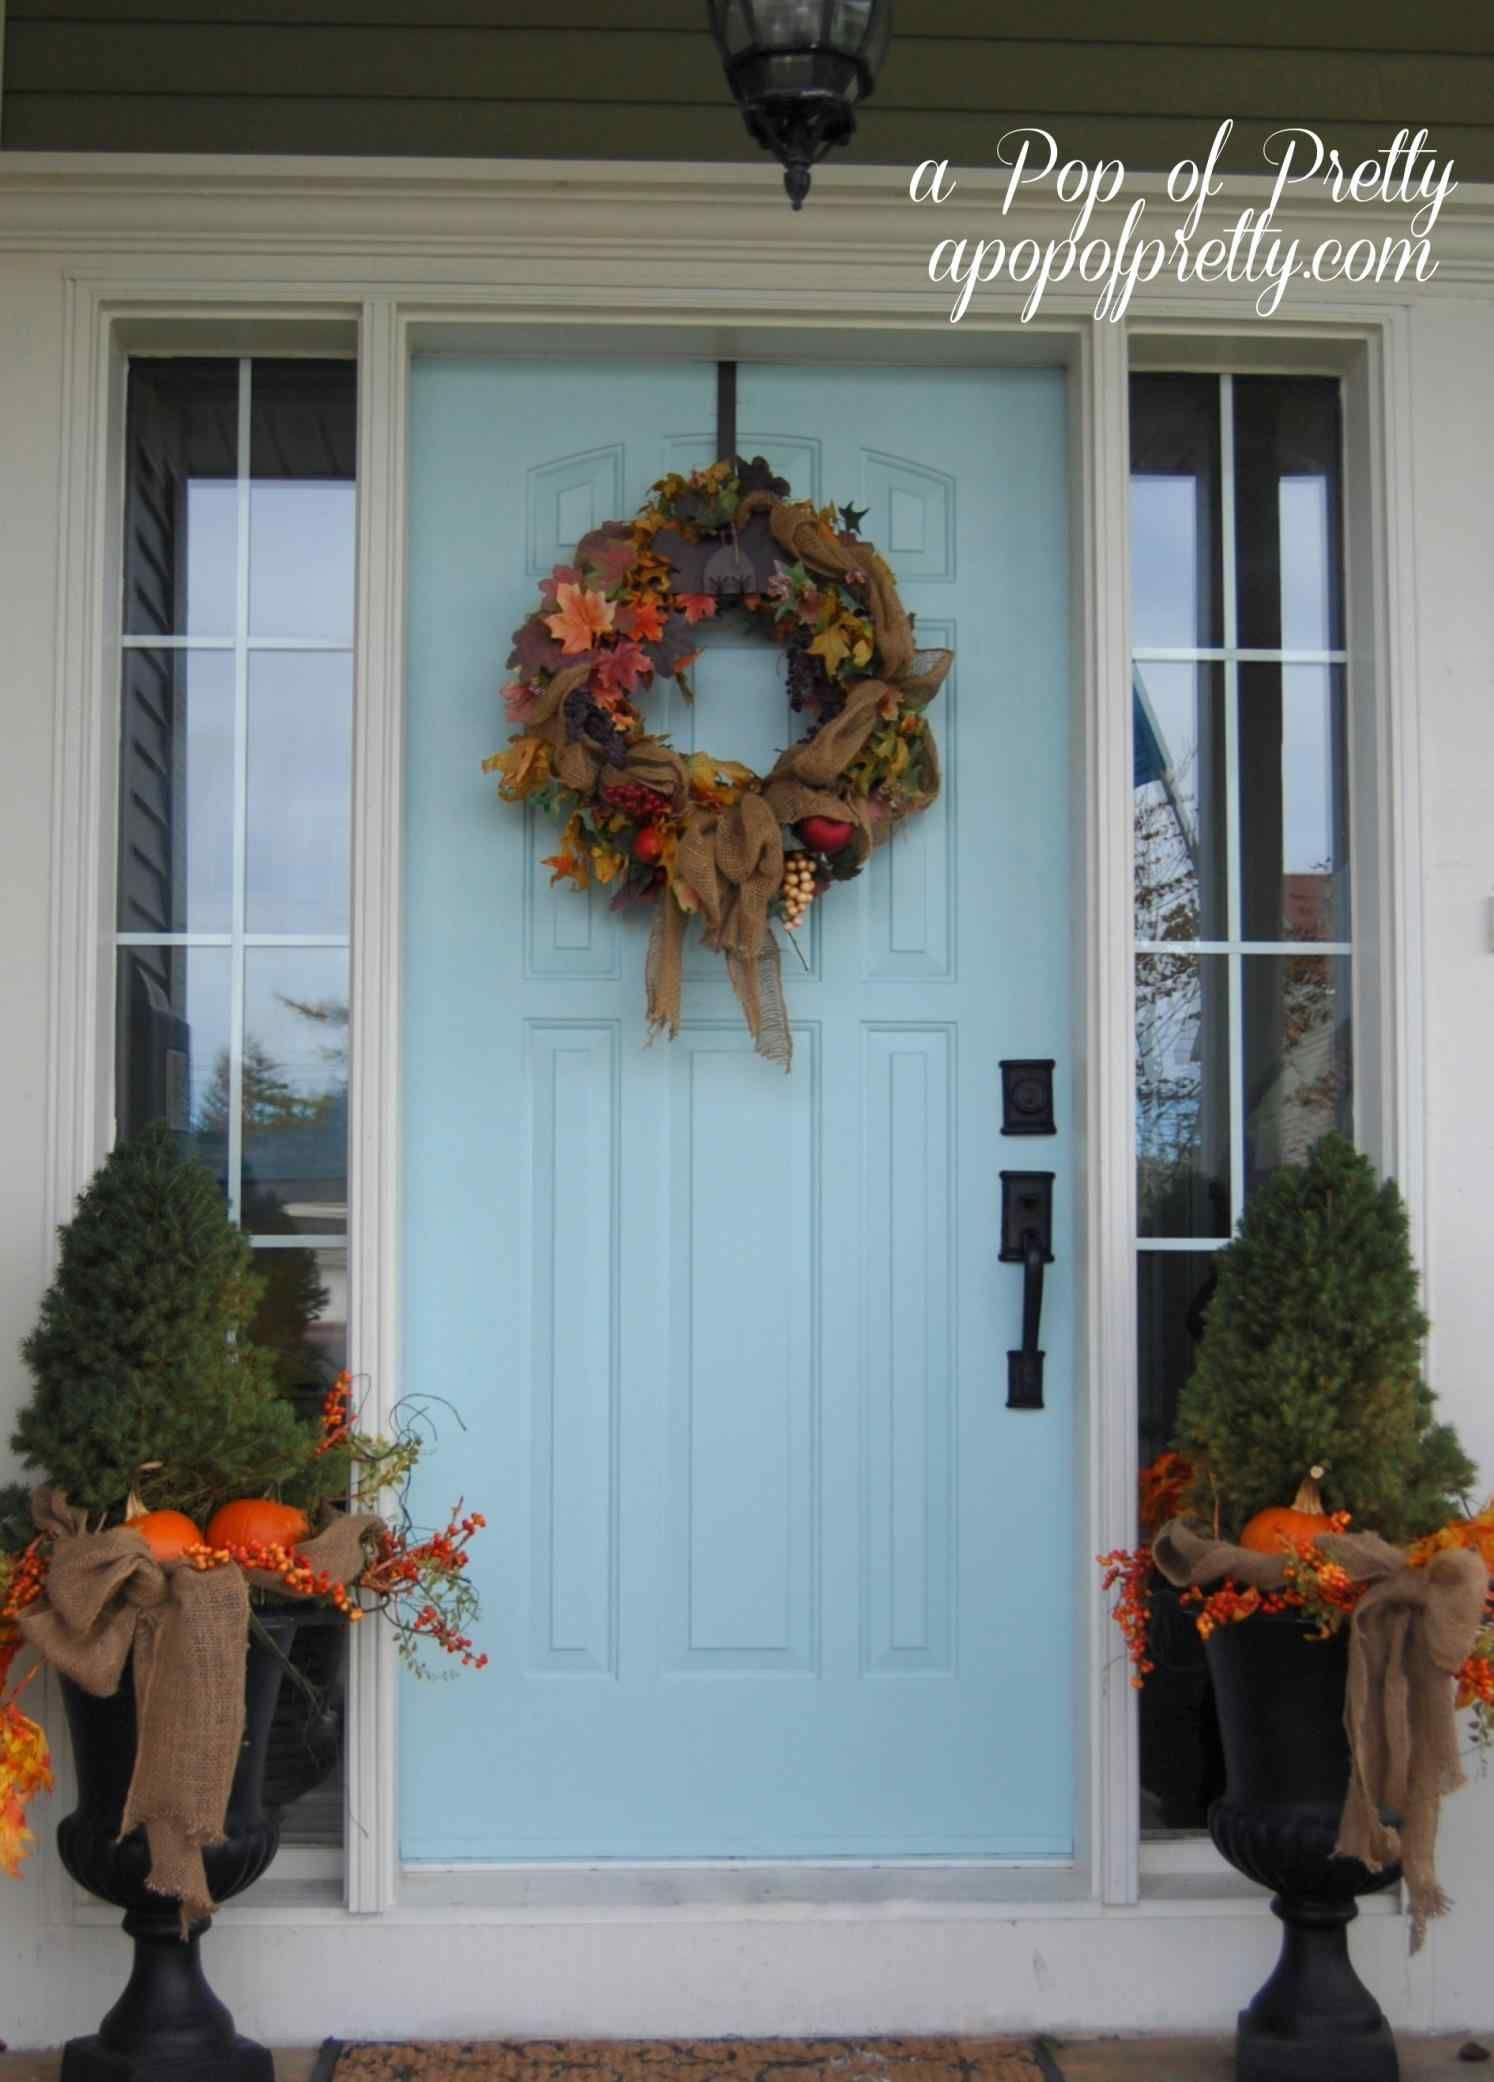 14 Wonderful Decorating Your Front Door For Christmas Kitchen Room